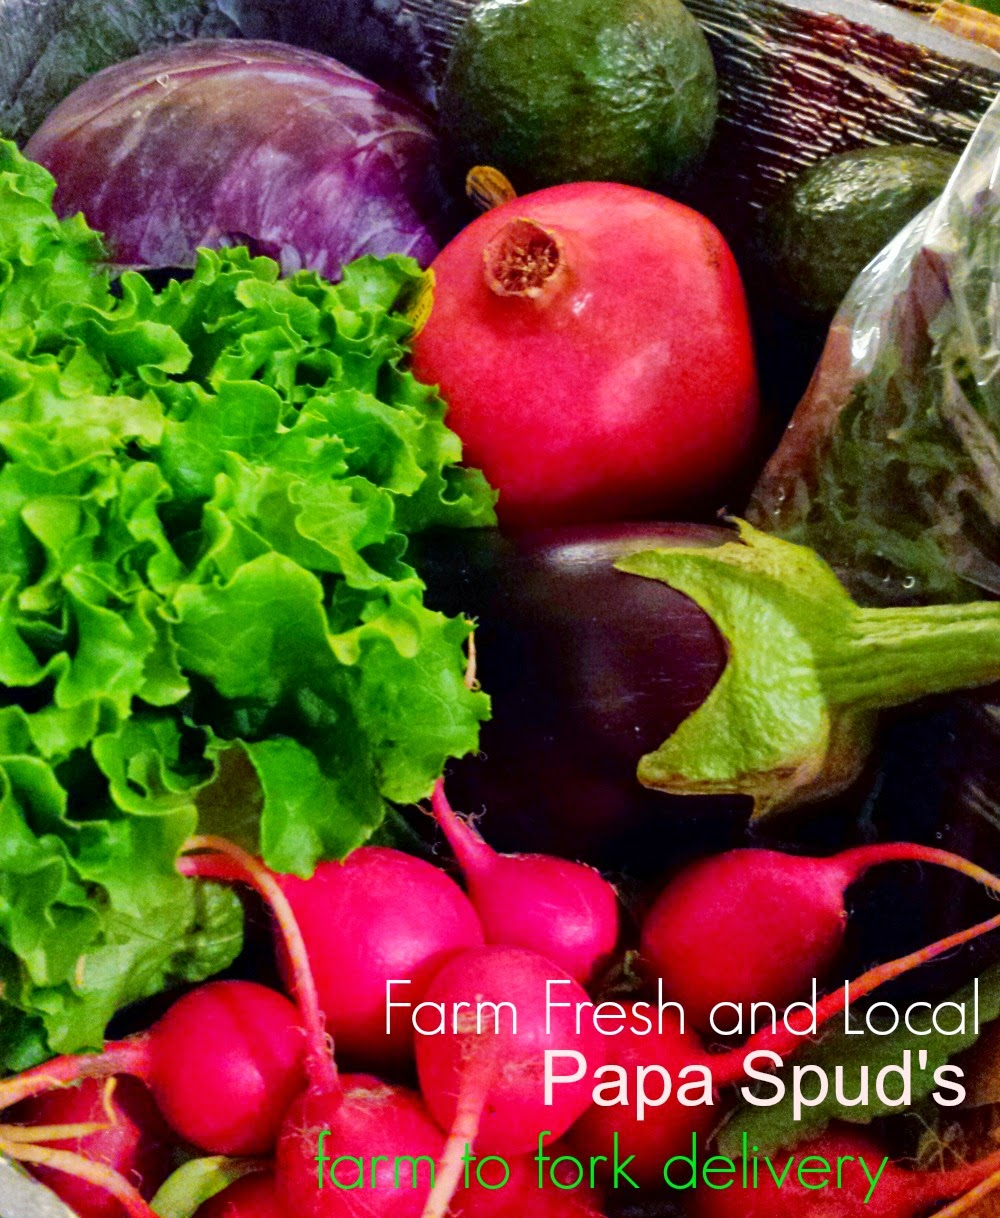 Eathing Healthier with Farm to Fork Delivery Service: Papa Spud's